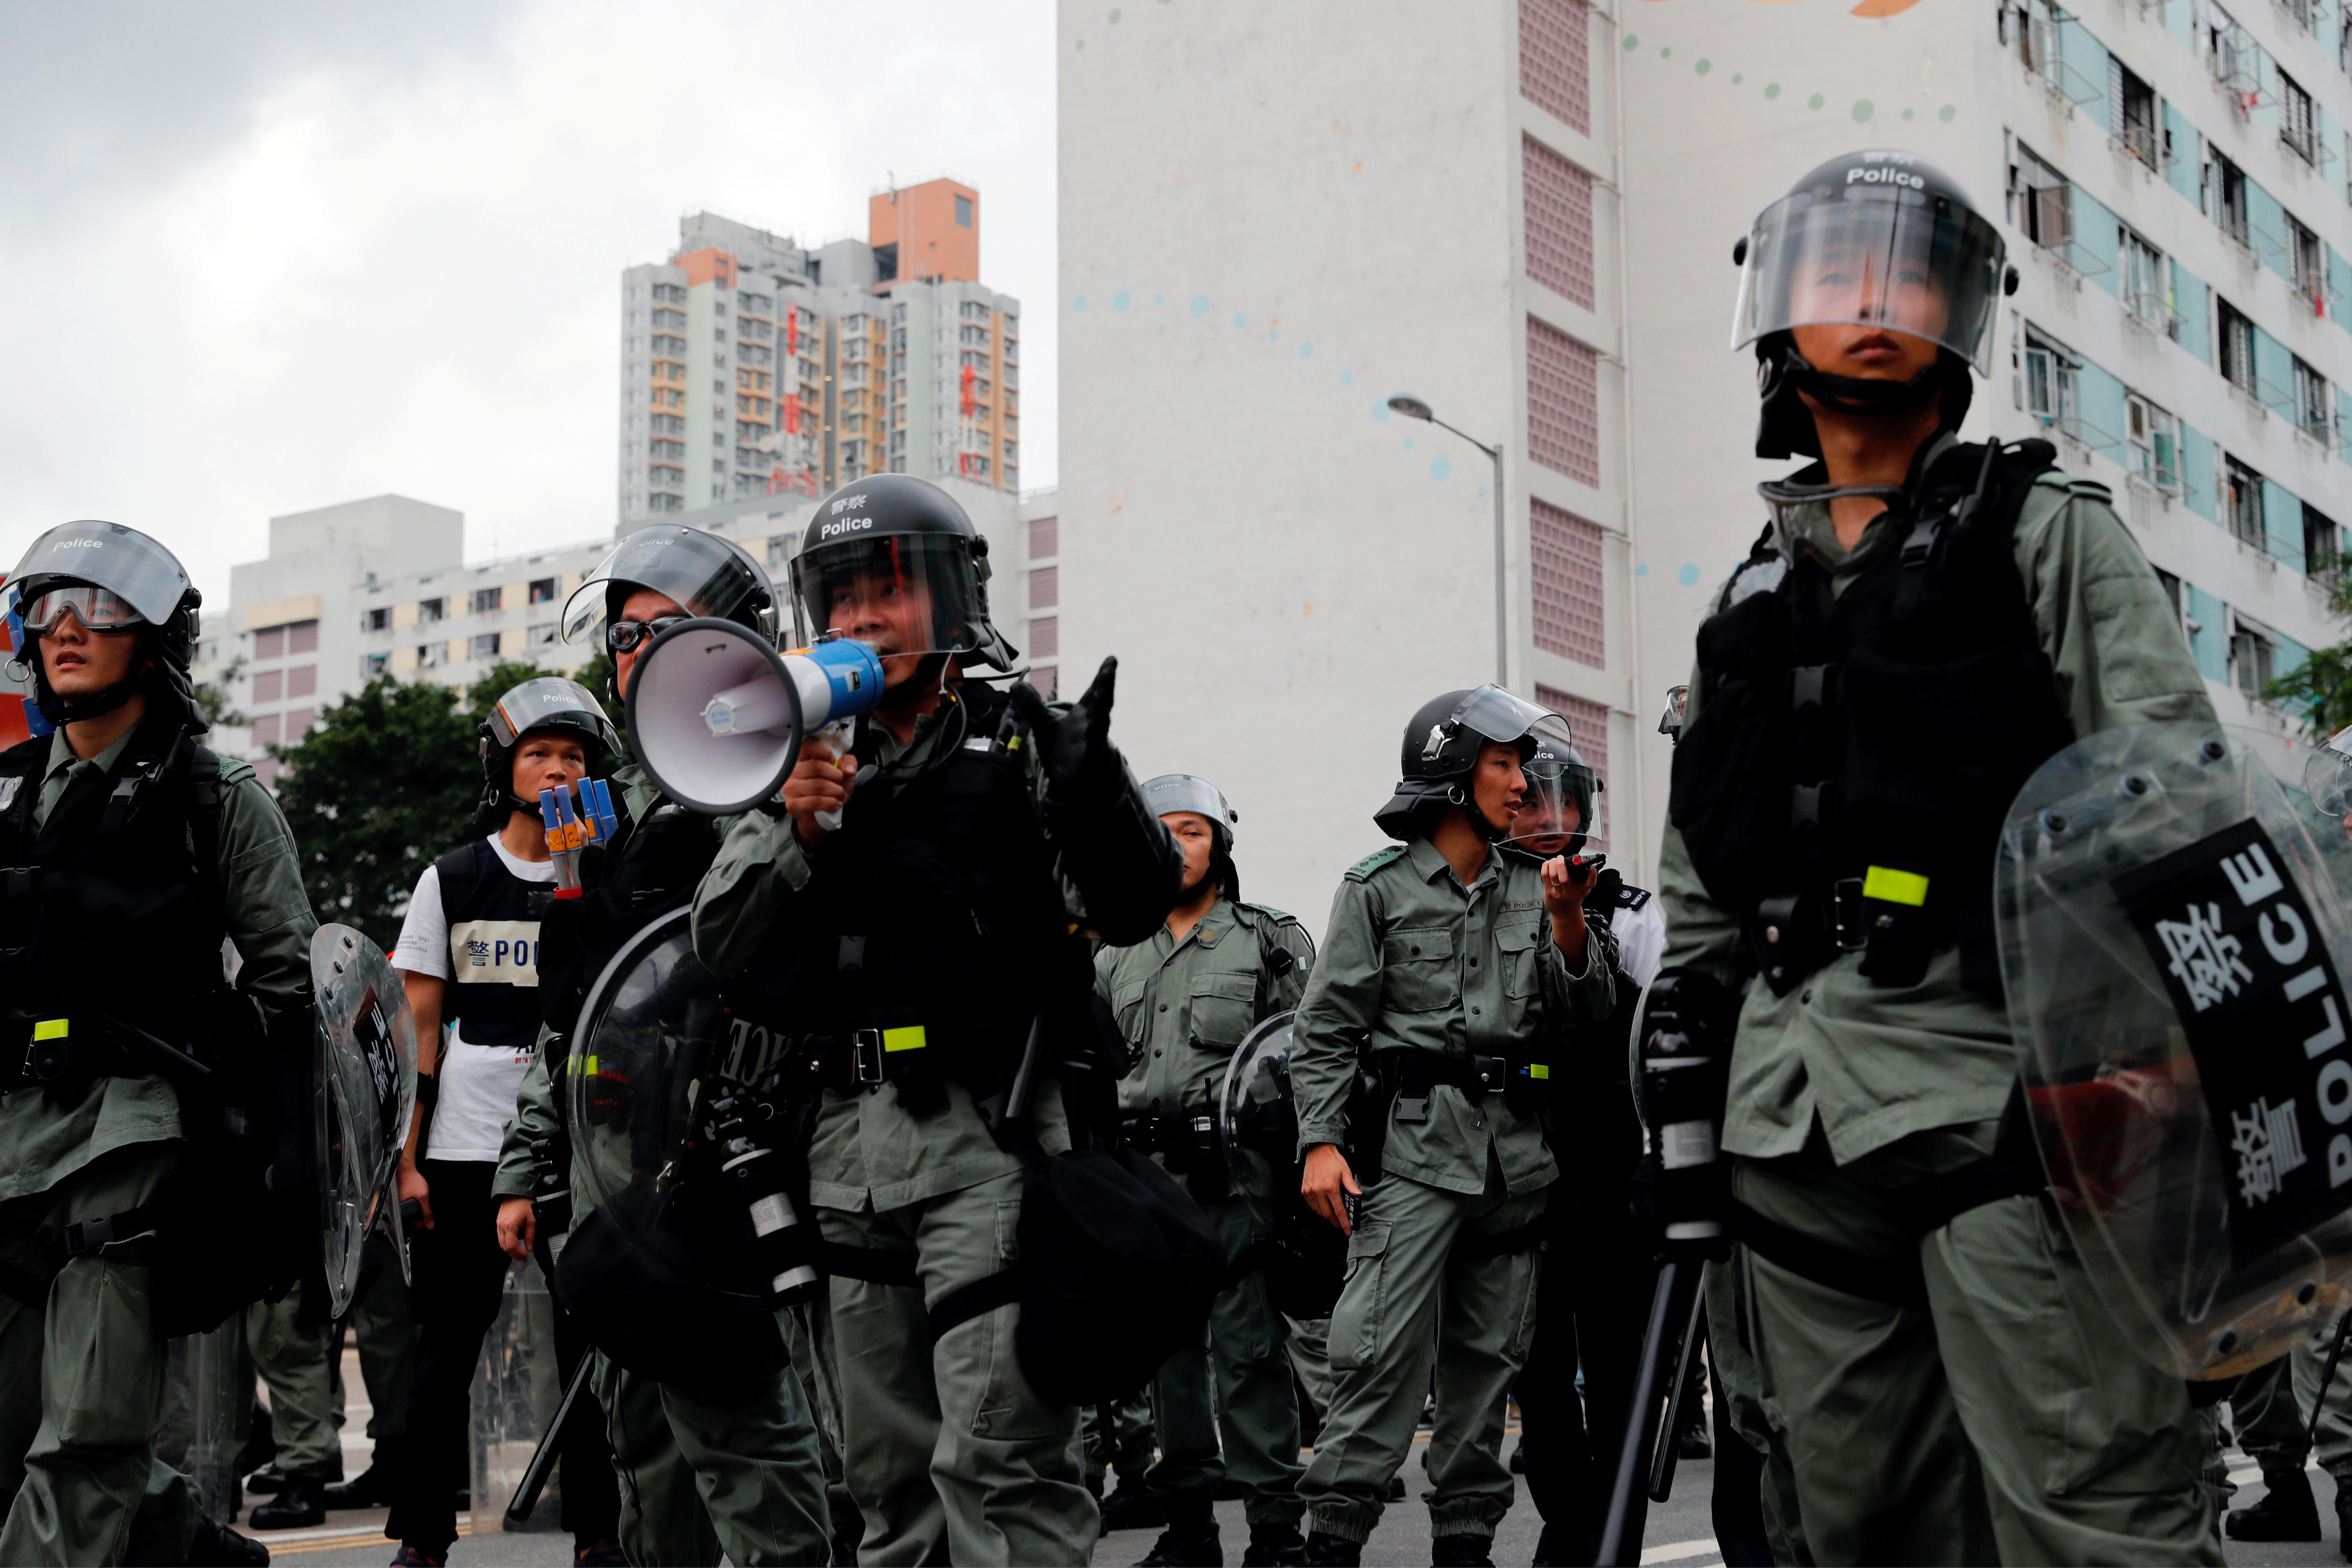 From 'Asia's finest' to 'black dogs': Hong Kong police under pressure